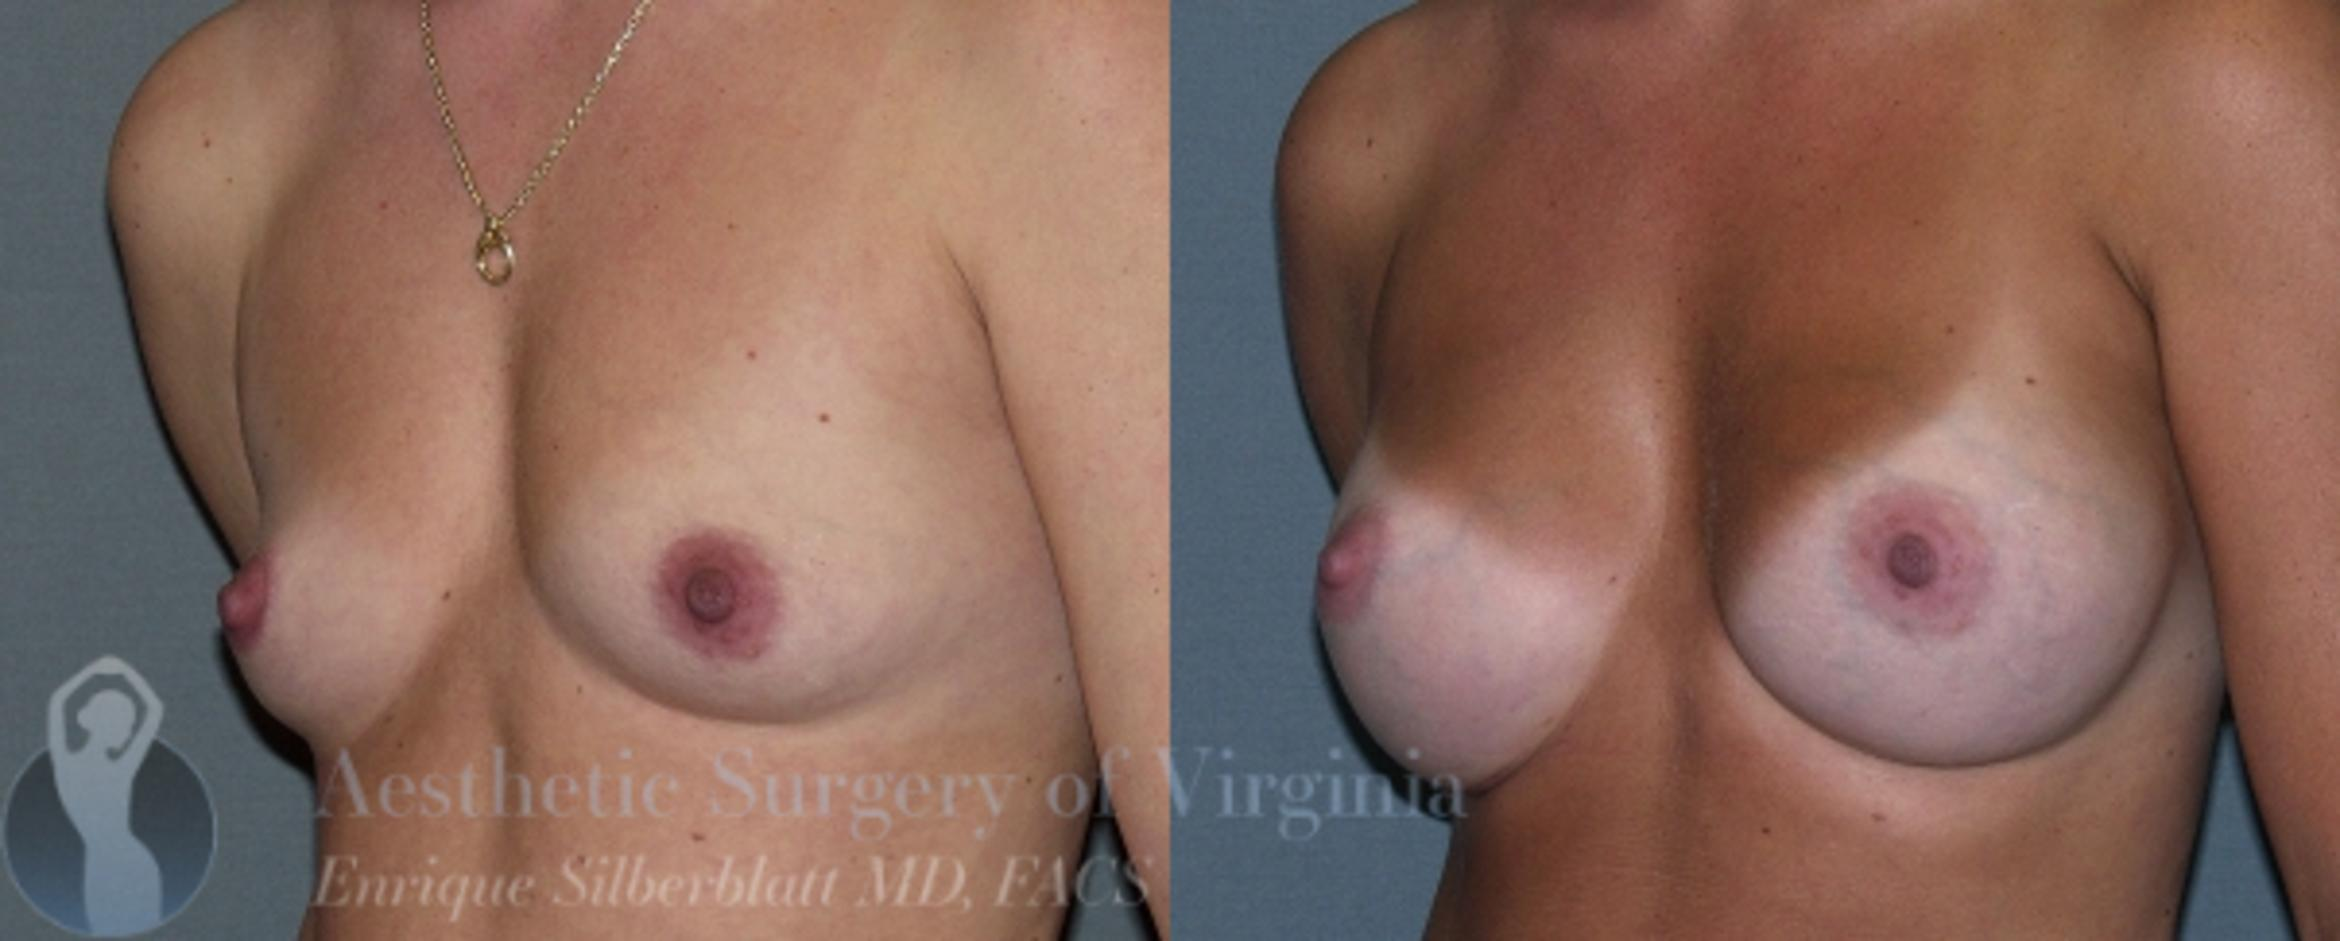 Breast Augmentation Case 6 Before & After View #2 | Roanoke, VA | Aesthetic Surgery of Virginia: Enrique Silberblatt, MD